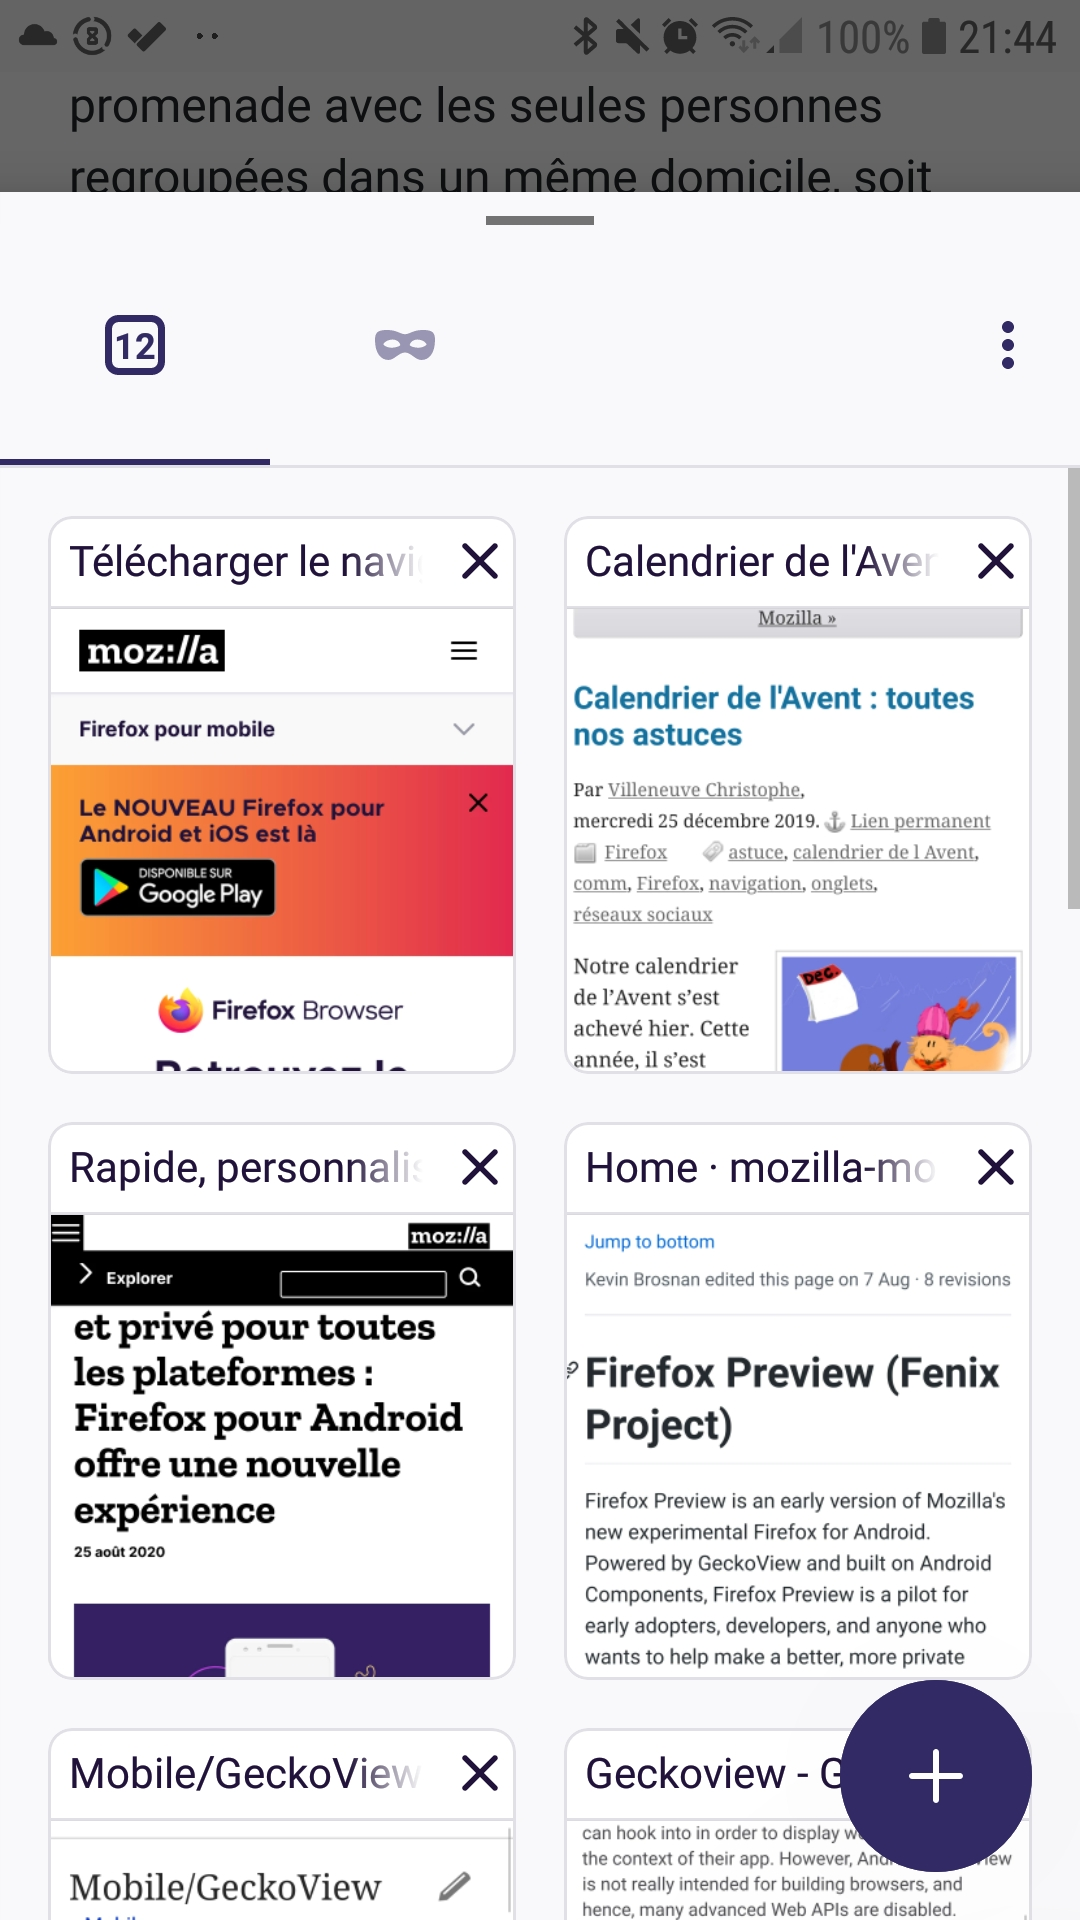 Panneau des onglets de Firefox pour Android Nightly